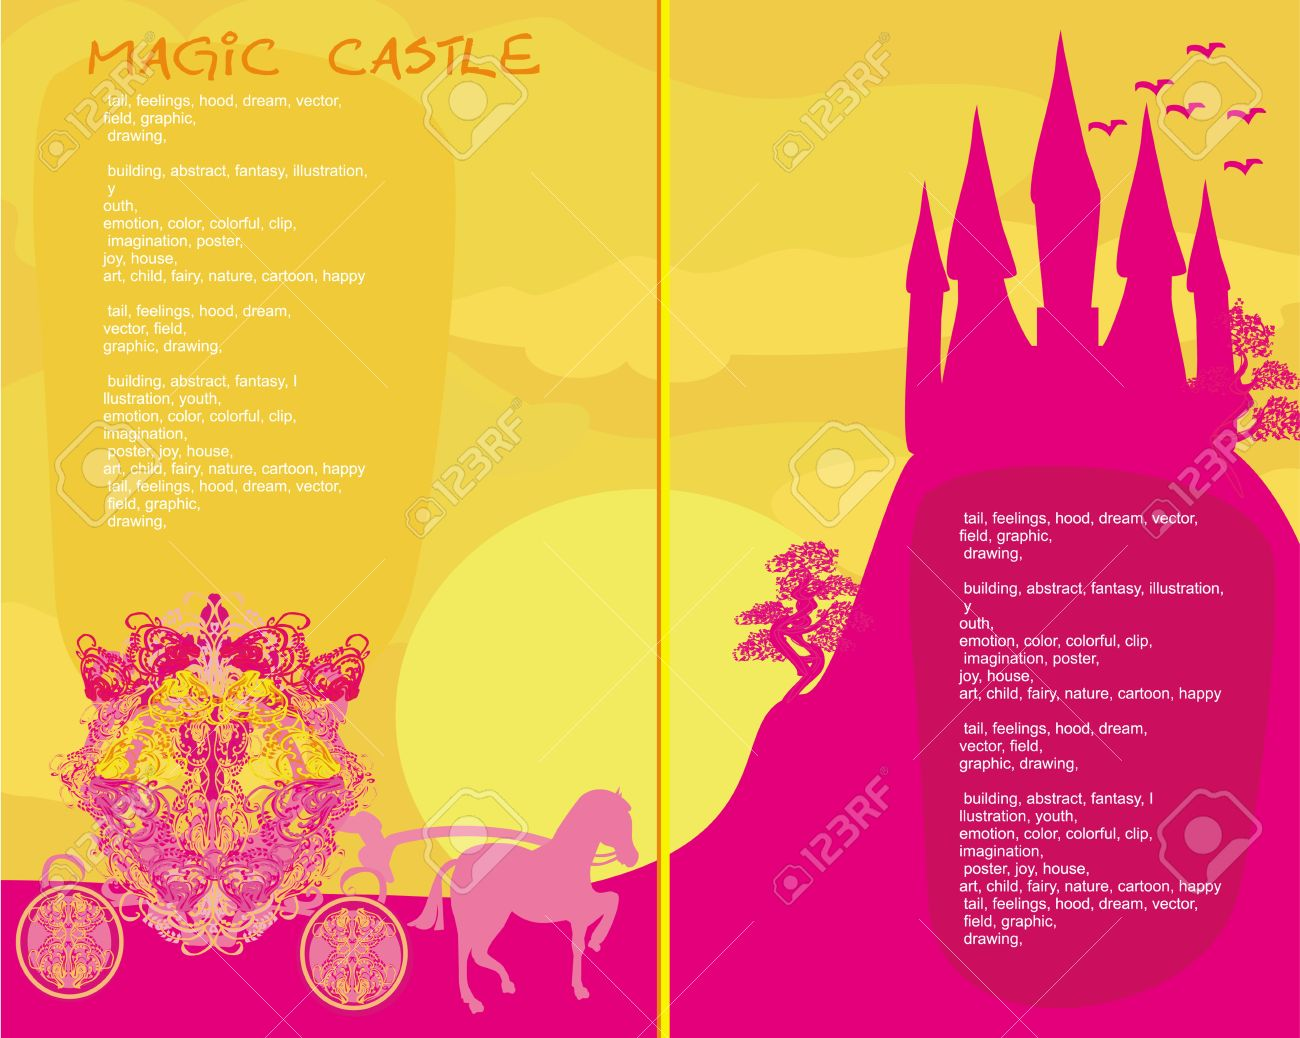 fairy tale book - Silhouette of a horse carriage and a medieval castle Stock Vector - 18982285